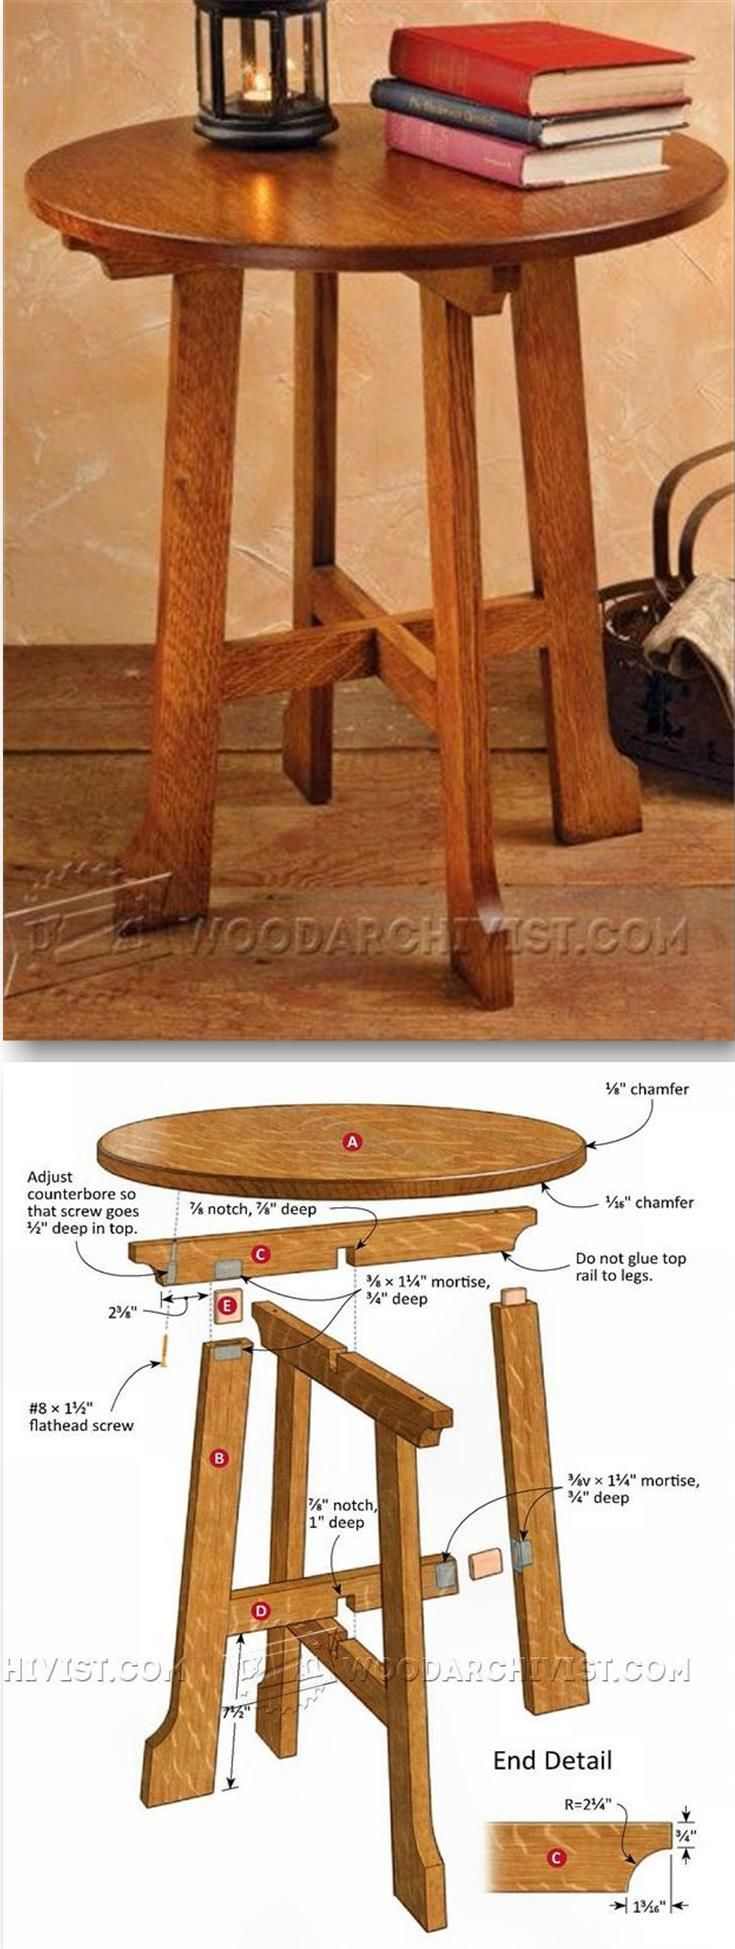 585 best mission craftsman furniture images on pinterest for Craftsman furniture plans